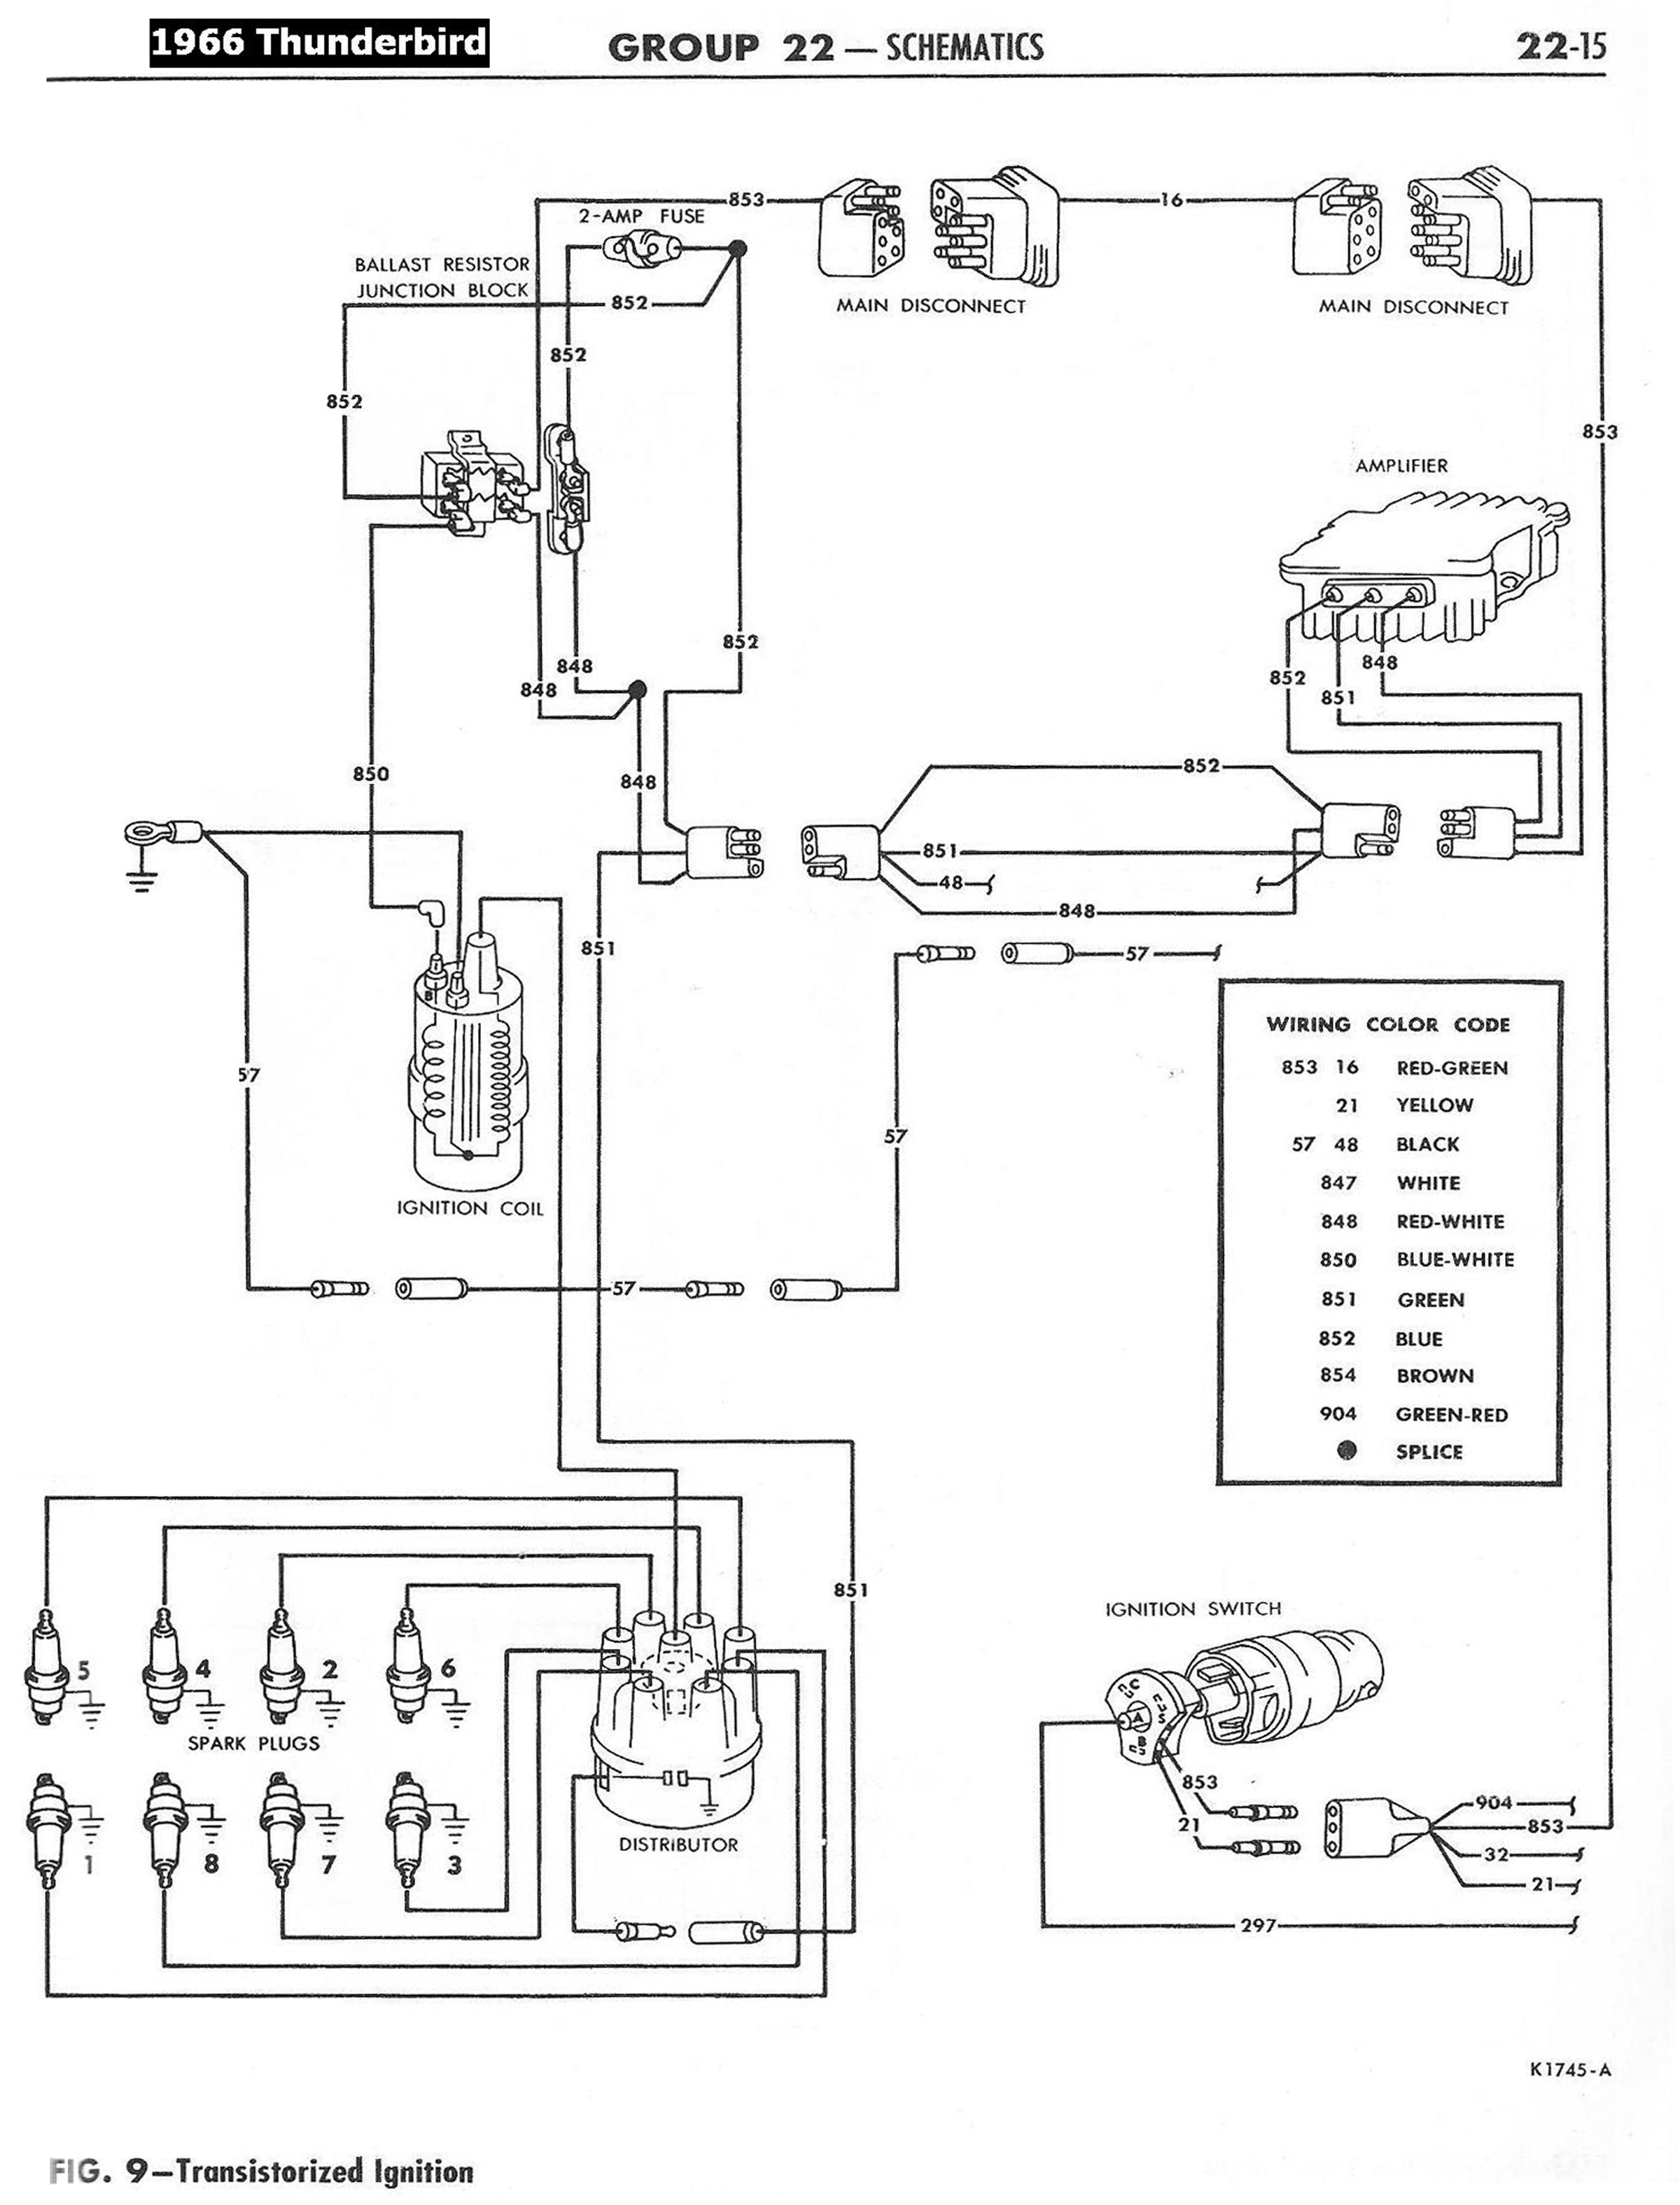 Car Ignition System Wiring Diagram Transistor Type Ignition Squarebirds Rocketbirds and Fifties Of Car Ignition System Wiring Diagram